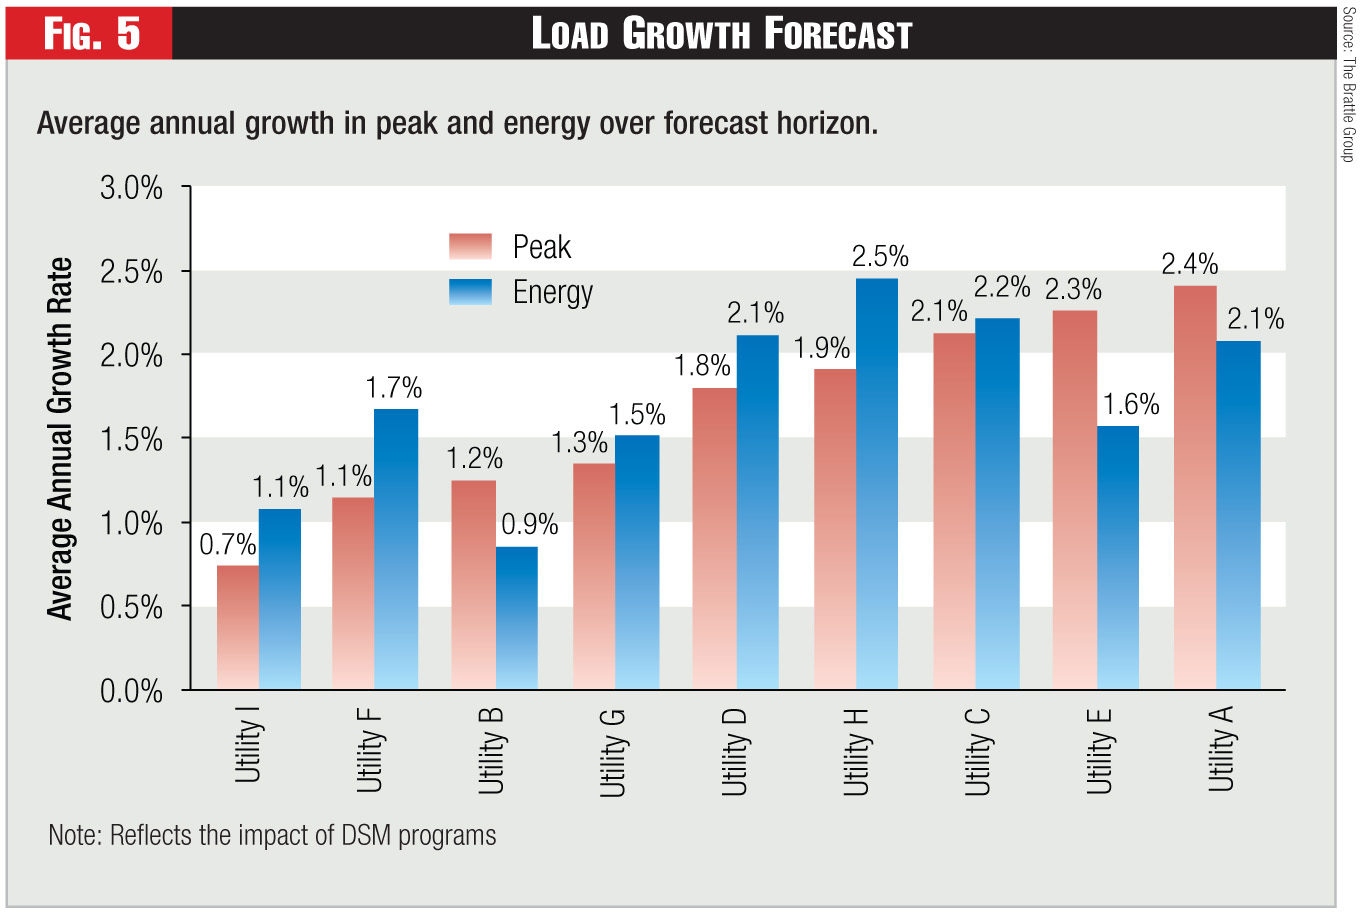 Figure 5 - Load Growth Forecast